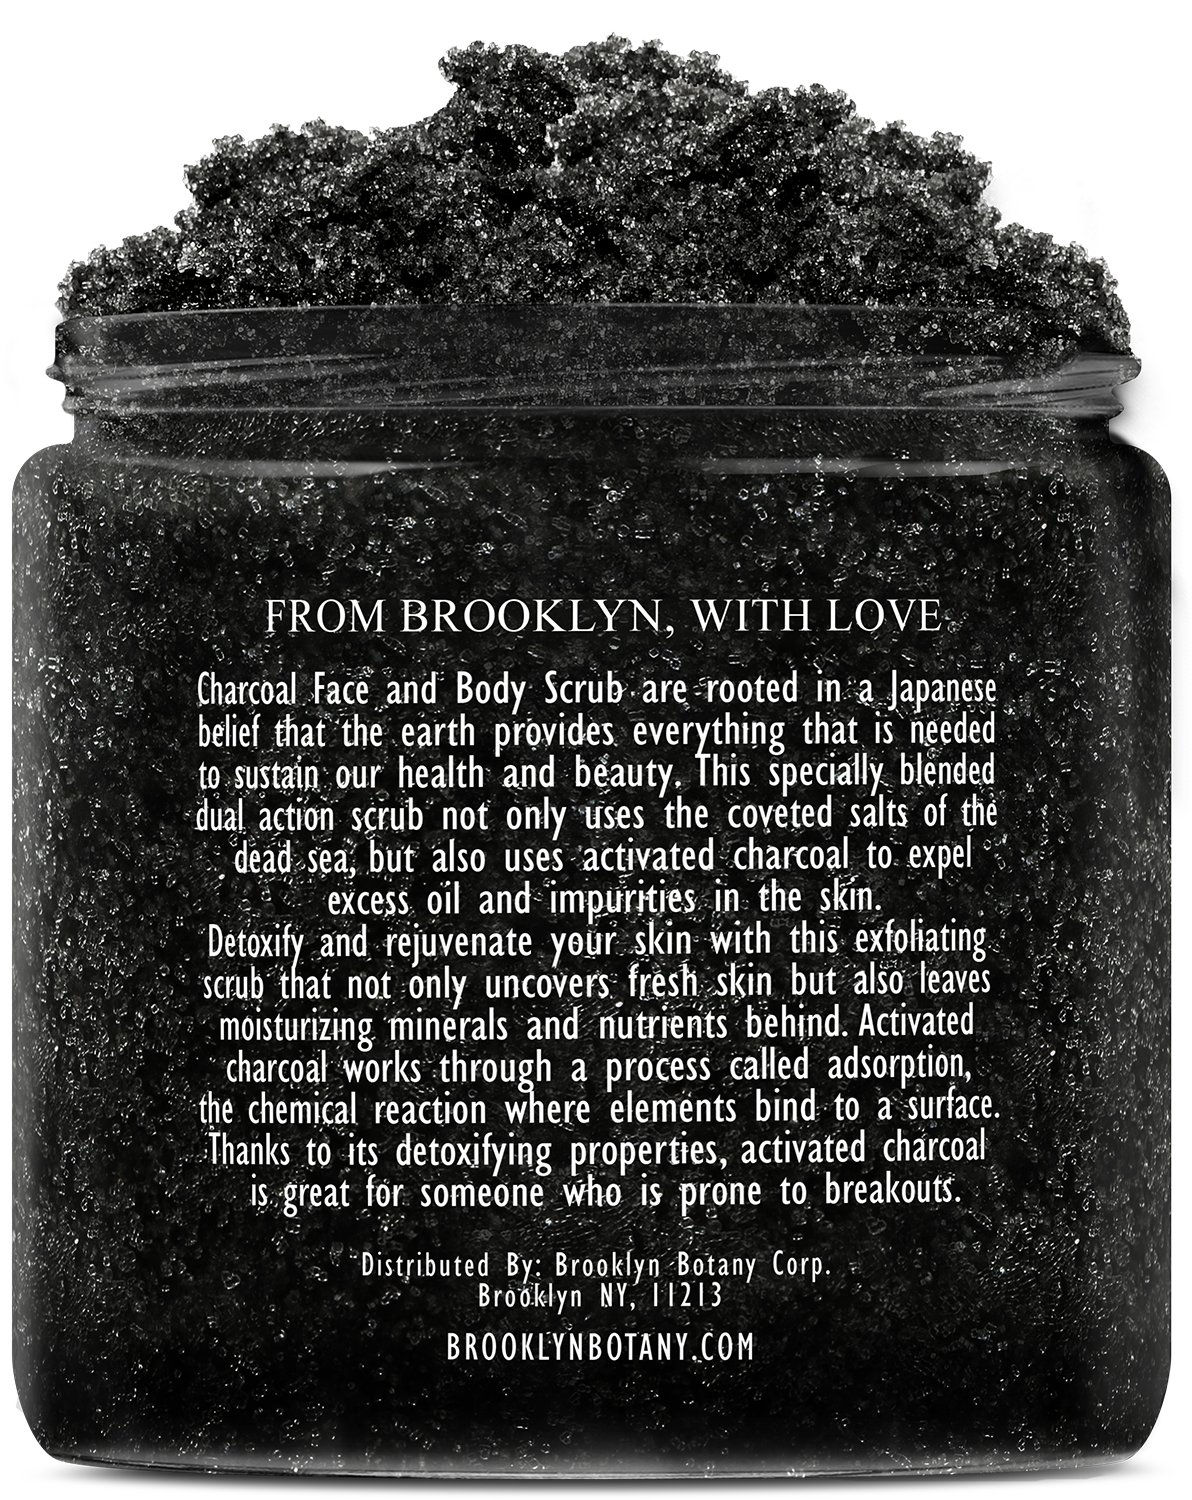 Premium Activated Charcoal Scrub 10 oz - For Deep Cleansing & Exfoliation - Pore Minimizer & Reduces Wrinkles, Acne Scars, Blackhead Remover & Anti Cellulite Treatment - Body Scrub & Facial Cleanser by Brooklyn Botany (Image #2)